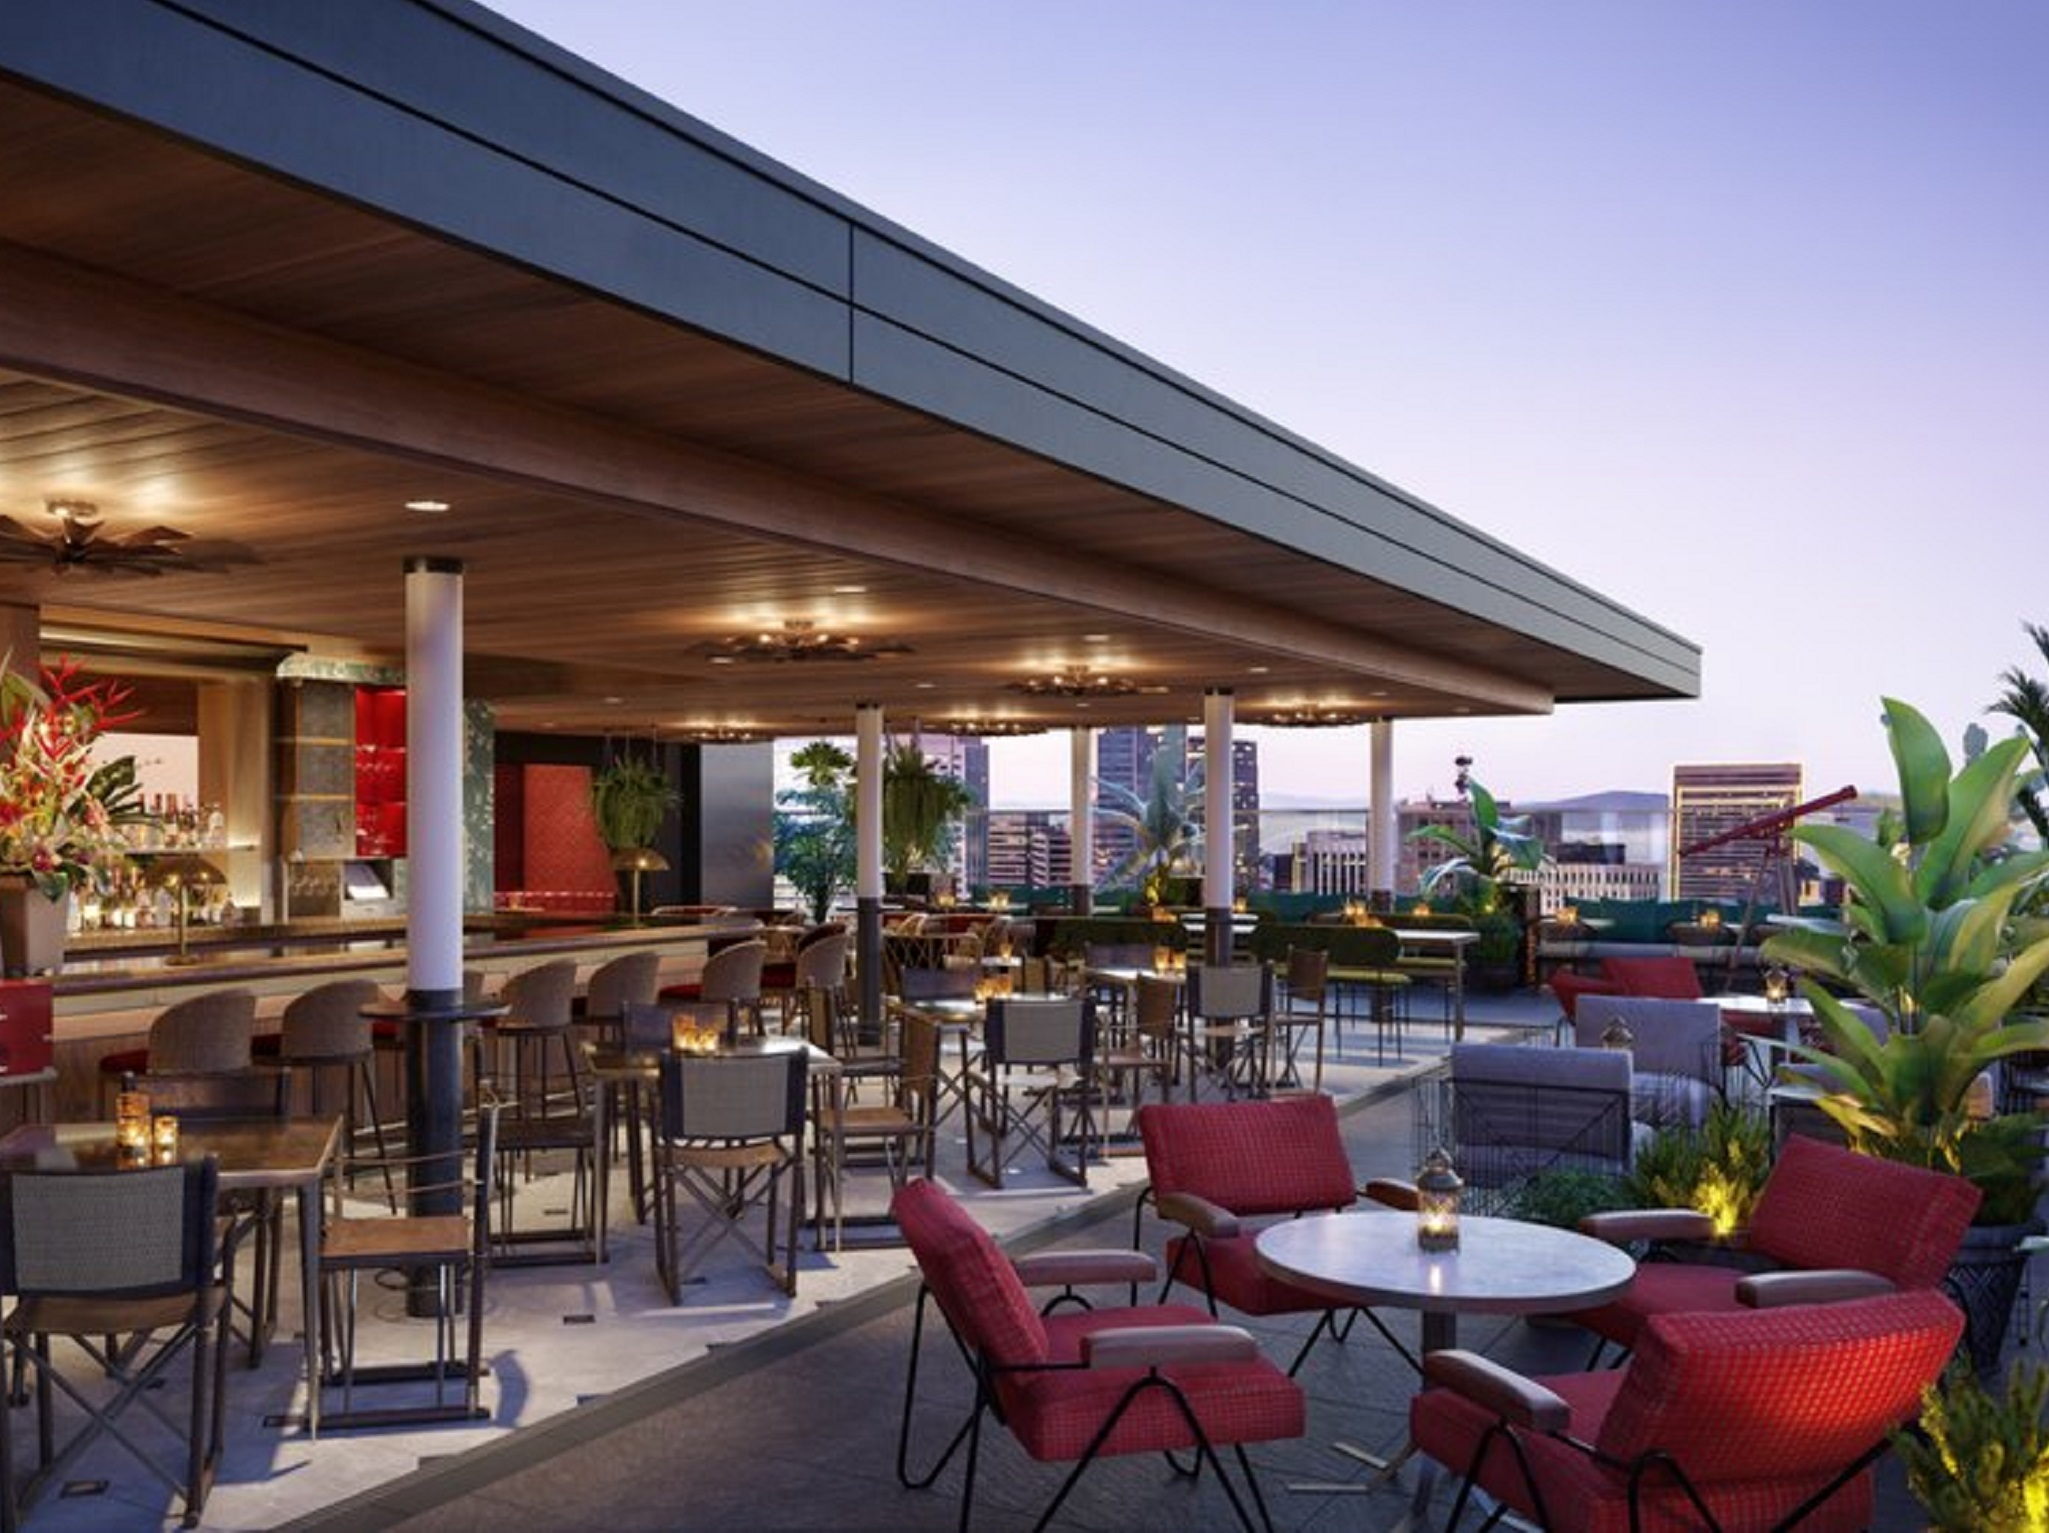 10 Best Rooftop Bars in San Francisco for Cocktails and Views